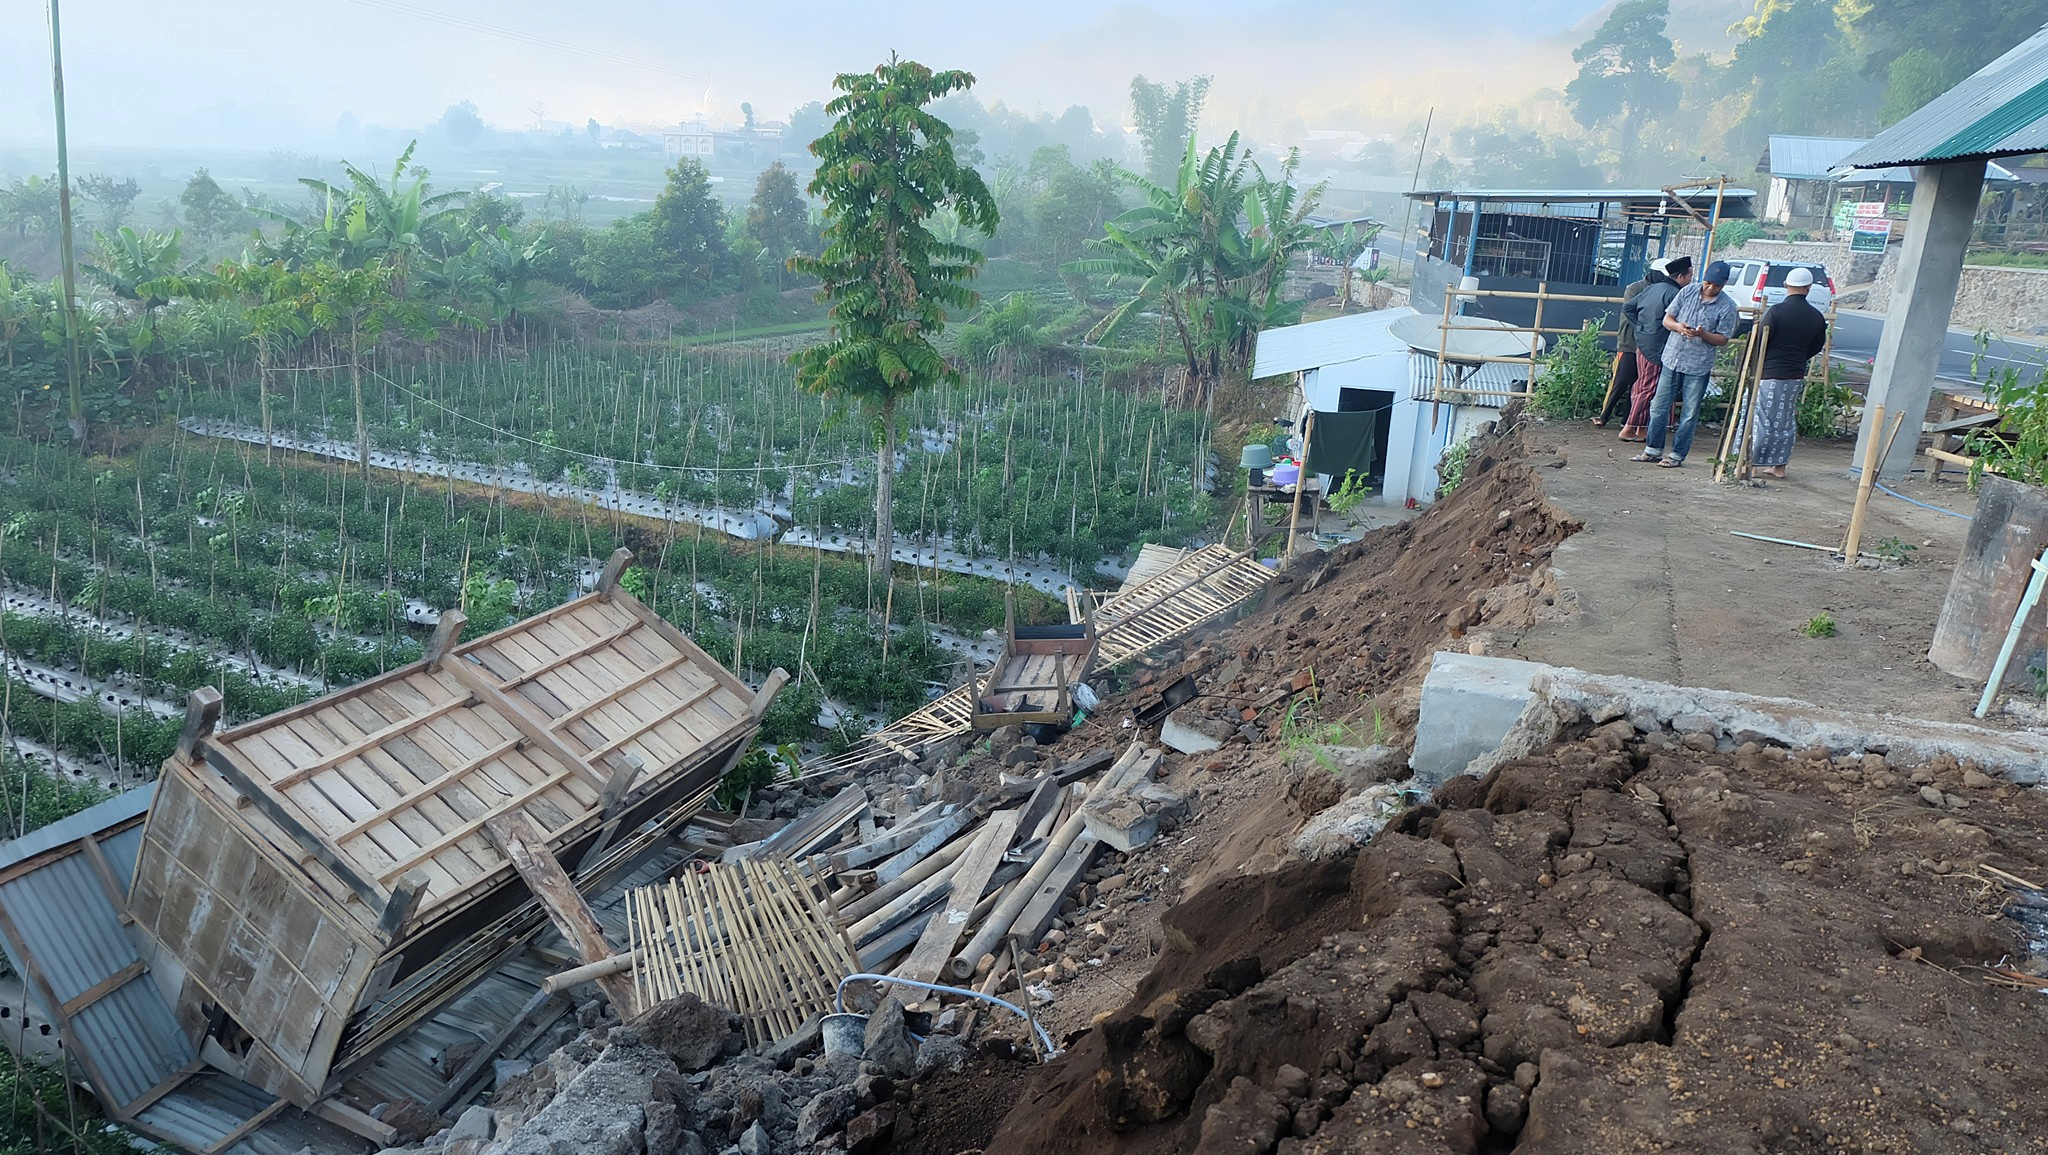 Damage is seen following an earthquake in Lombok, Indonesia on July 29, 2018.